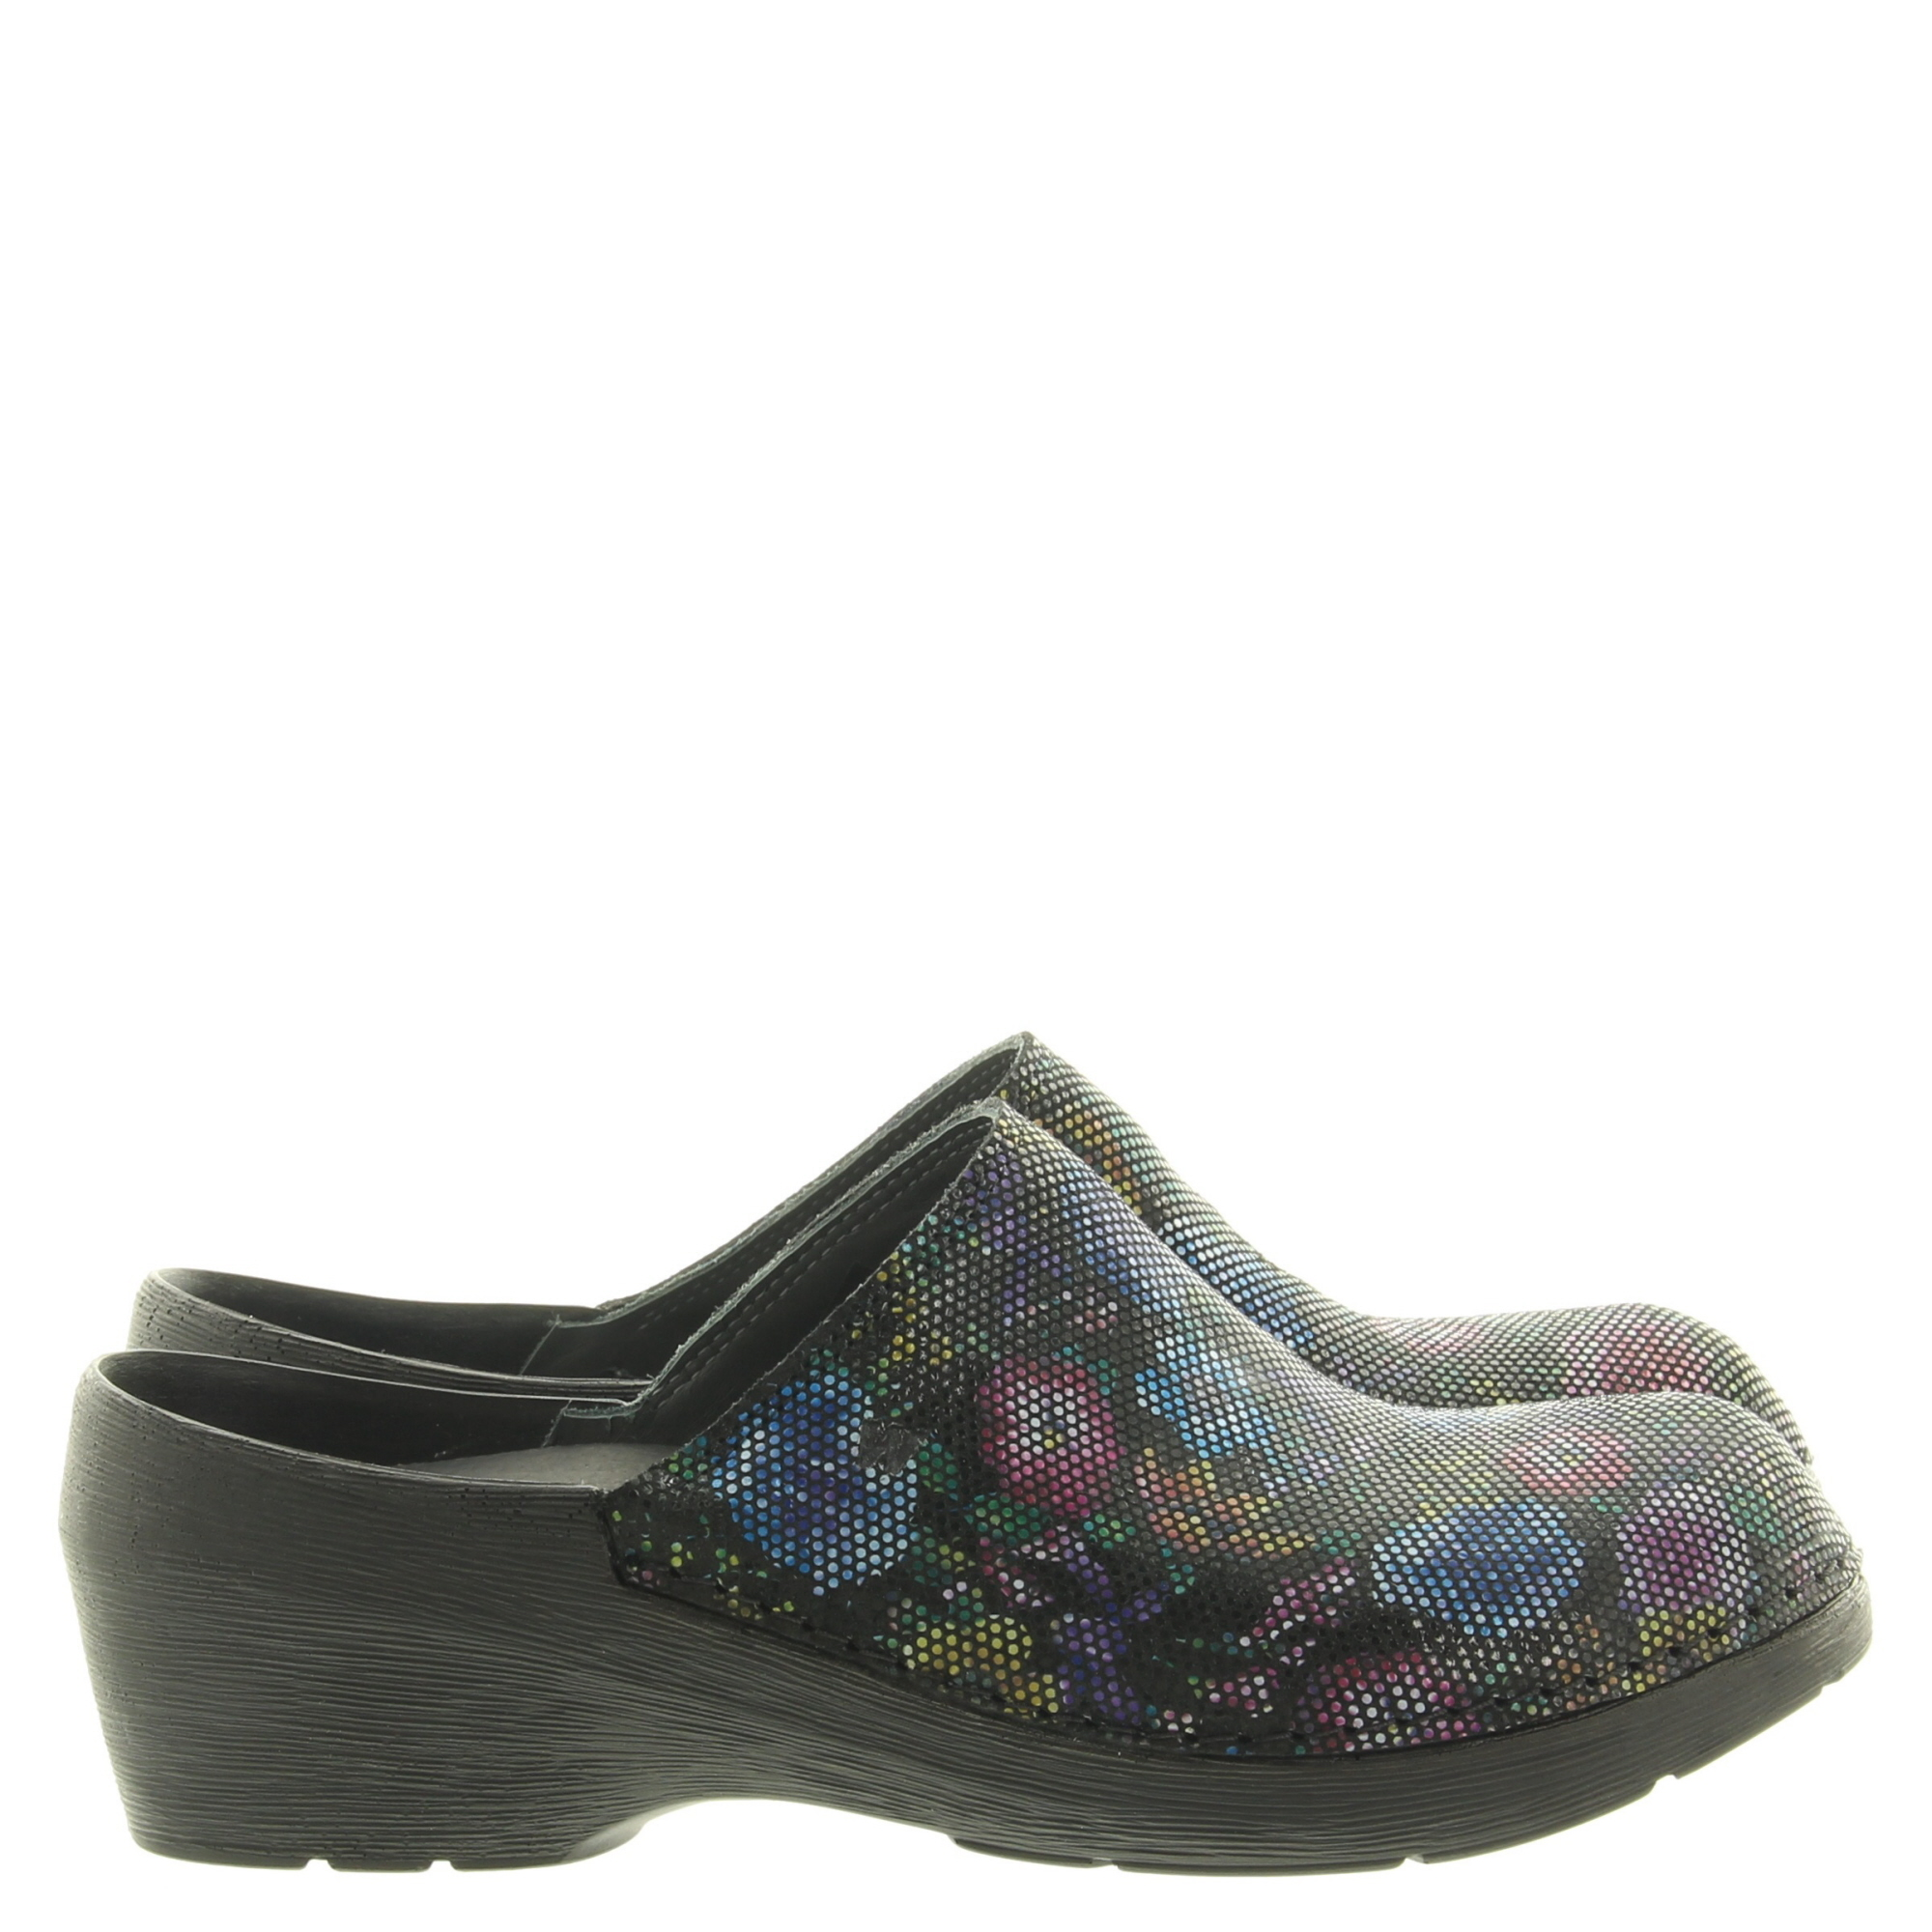 Wolky 0607545 Clog Flowerpoint 000 Black